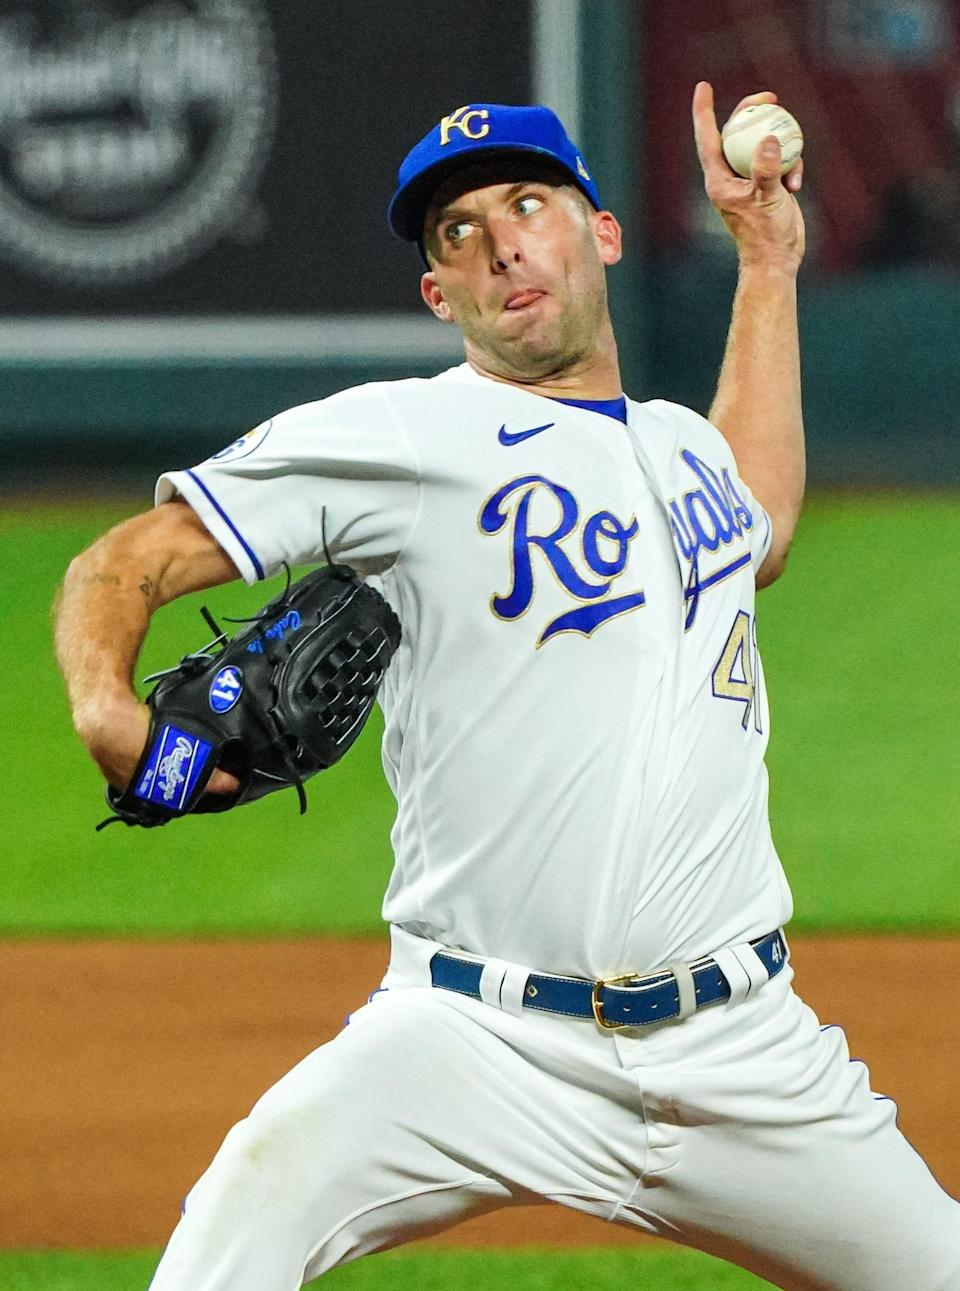 Danny Duffy pitching in 2020.